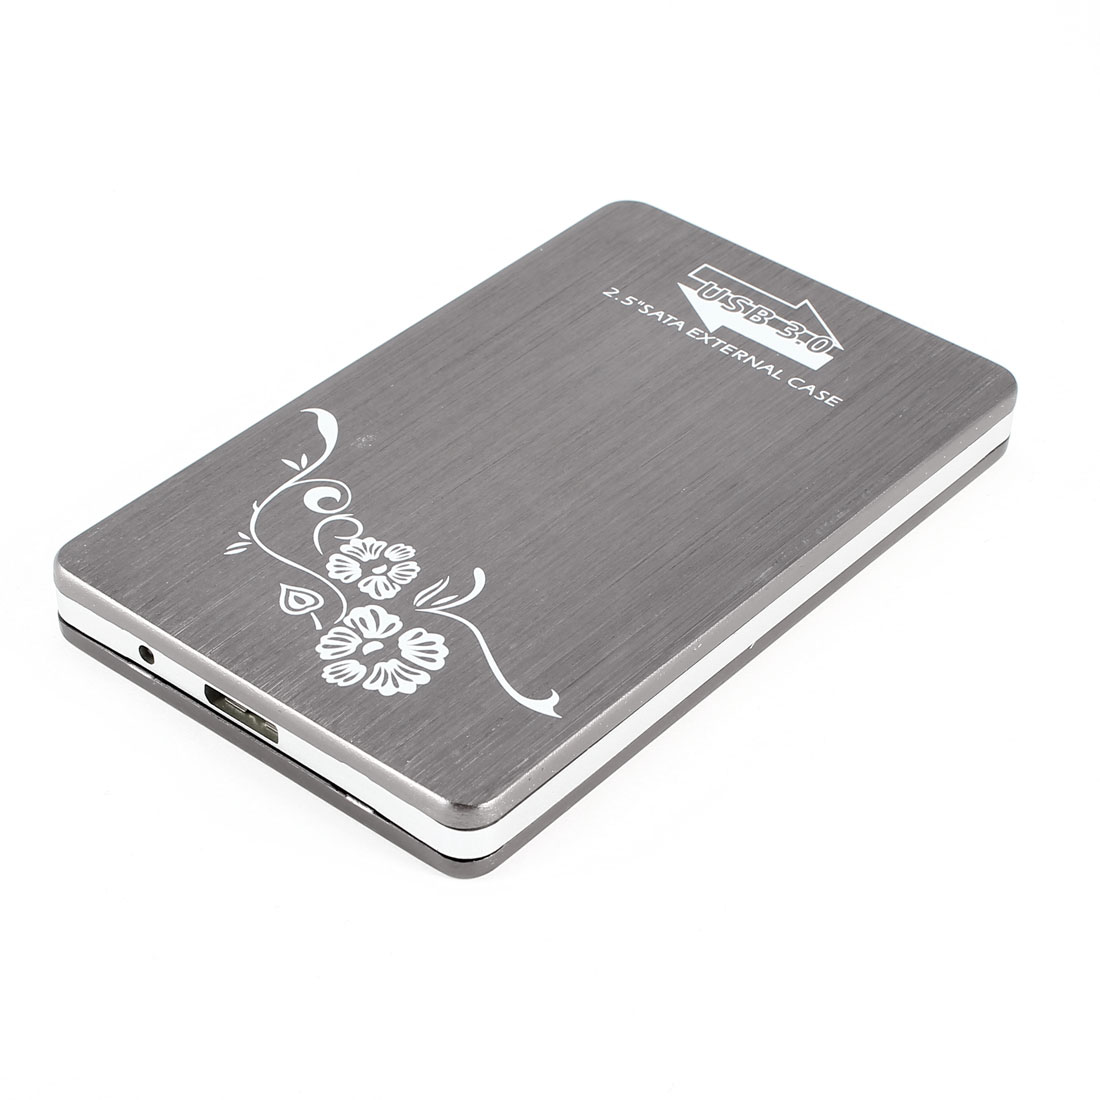 "Gray USB3.0 2.5"" SATA Hard Disk Drive External Case w USB Cable"